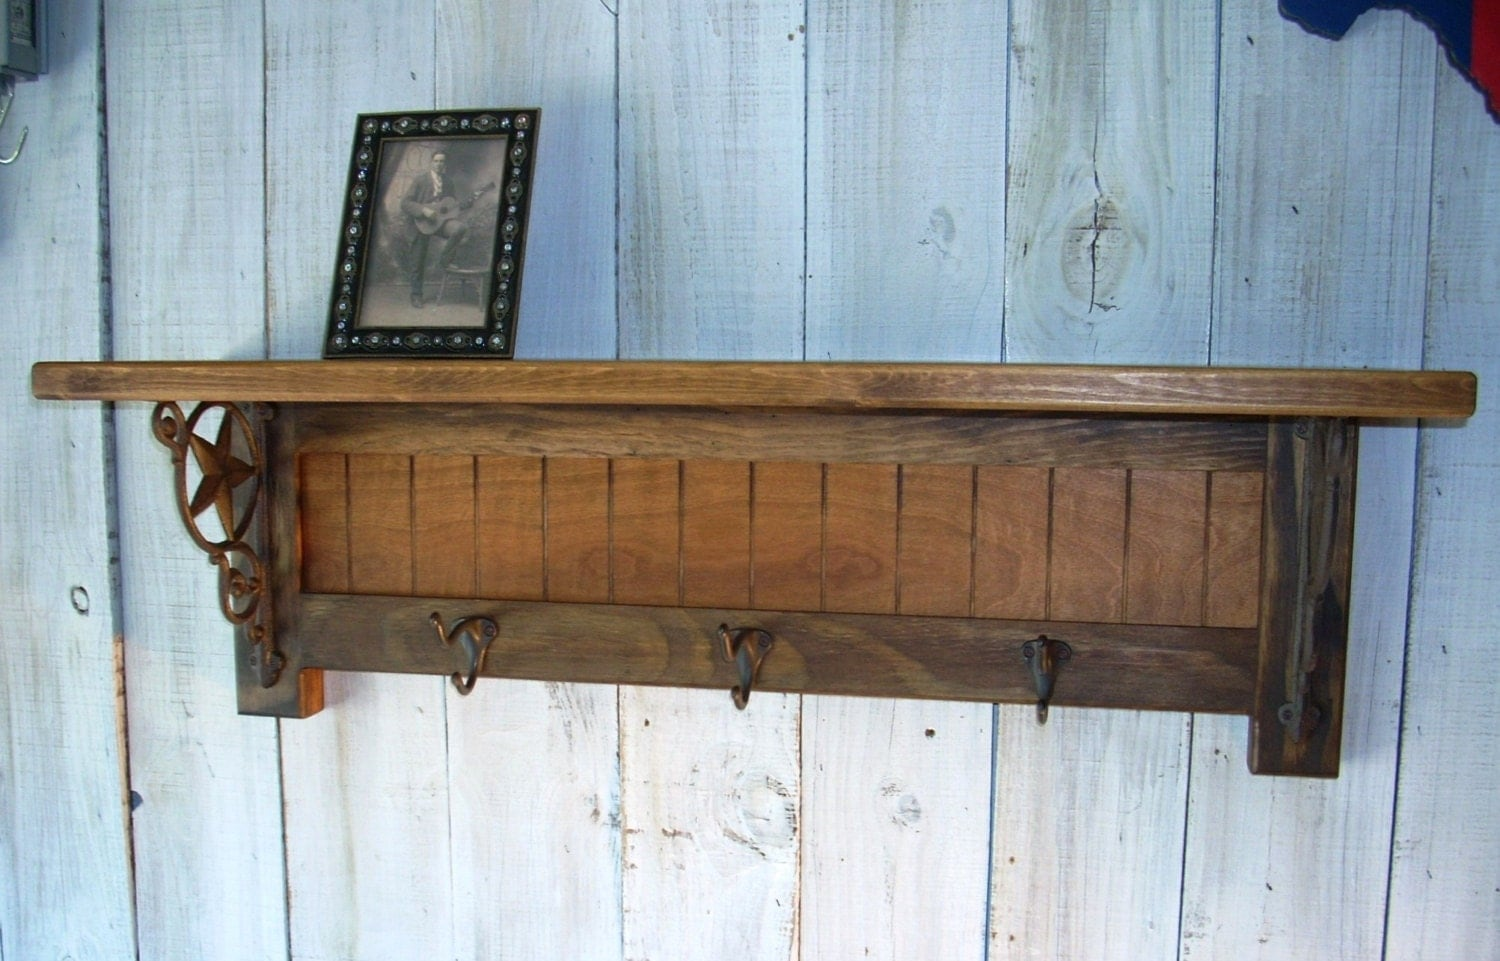 Western Furniture Wall Mounted Coat Rack Shelf With Vintage